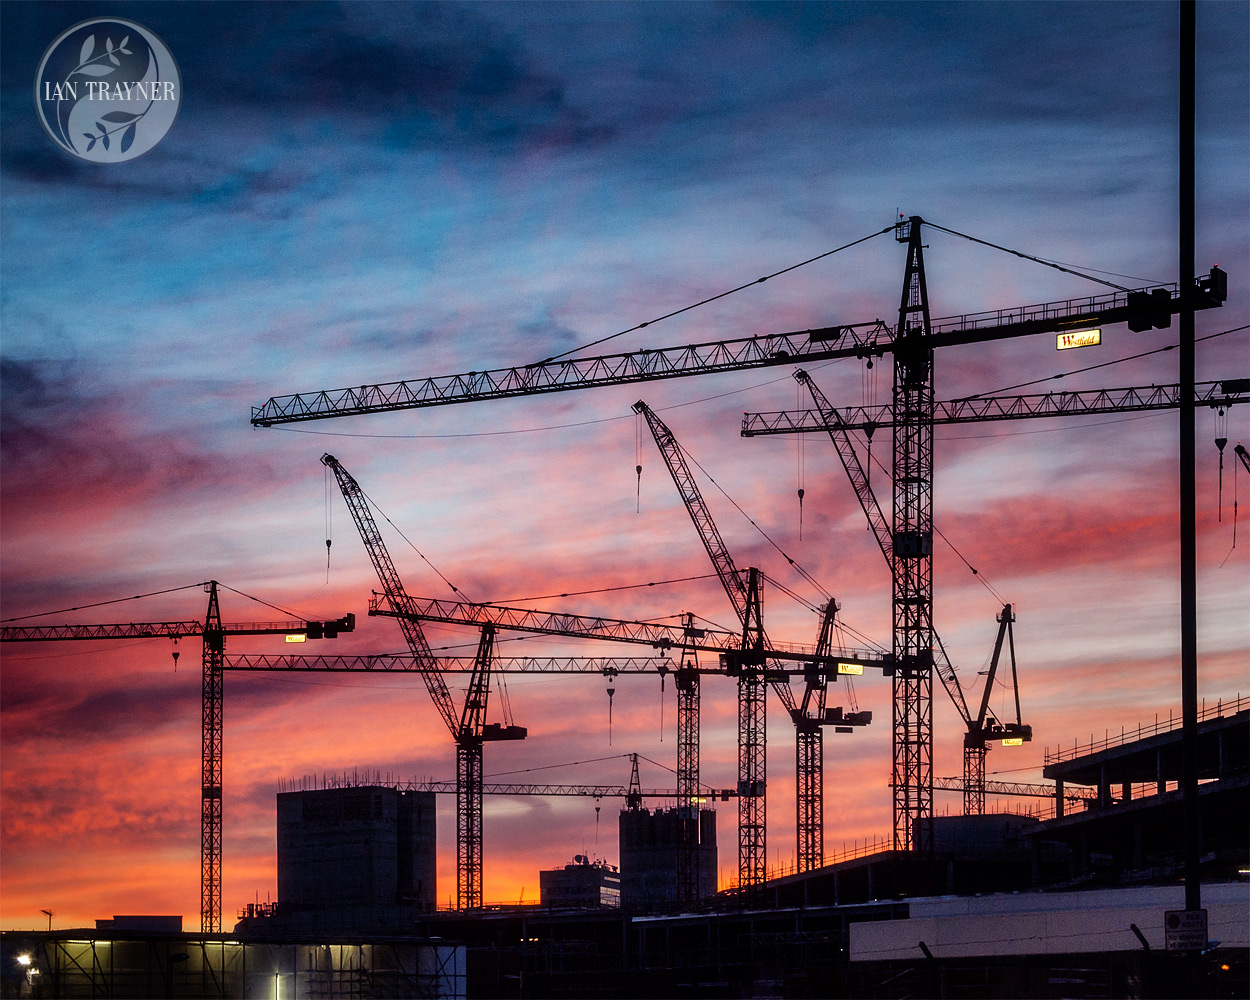 Sunset and cranes in silhouette. Photo taken by Ian Trayner in 2007 during construction of the Westsfield London shopping centre, Shepherd's Bush, London.